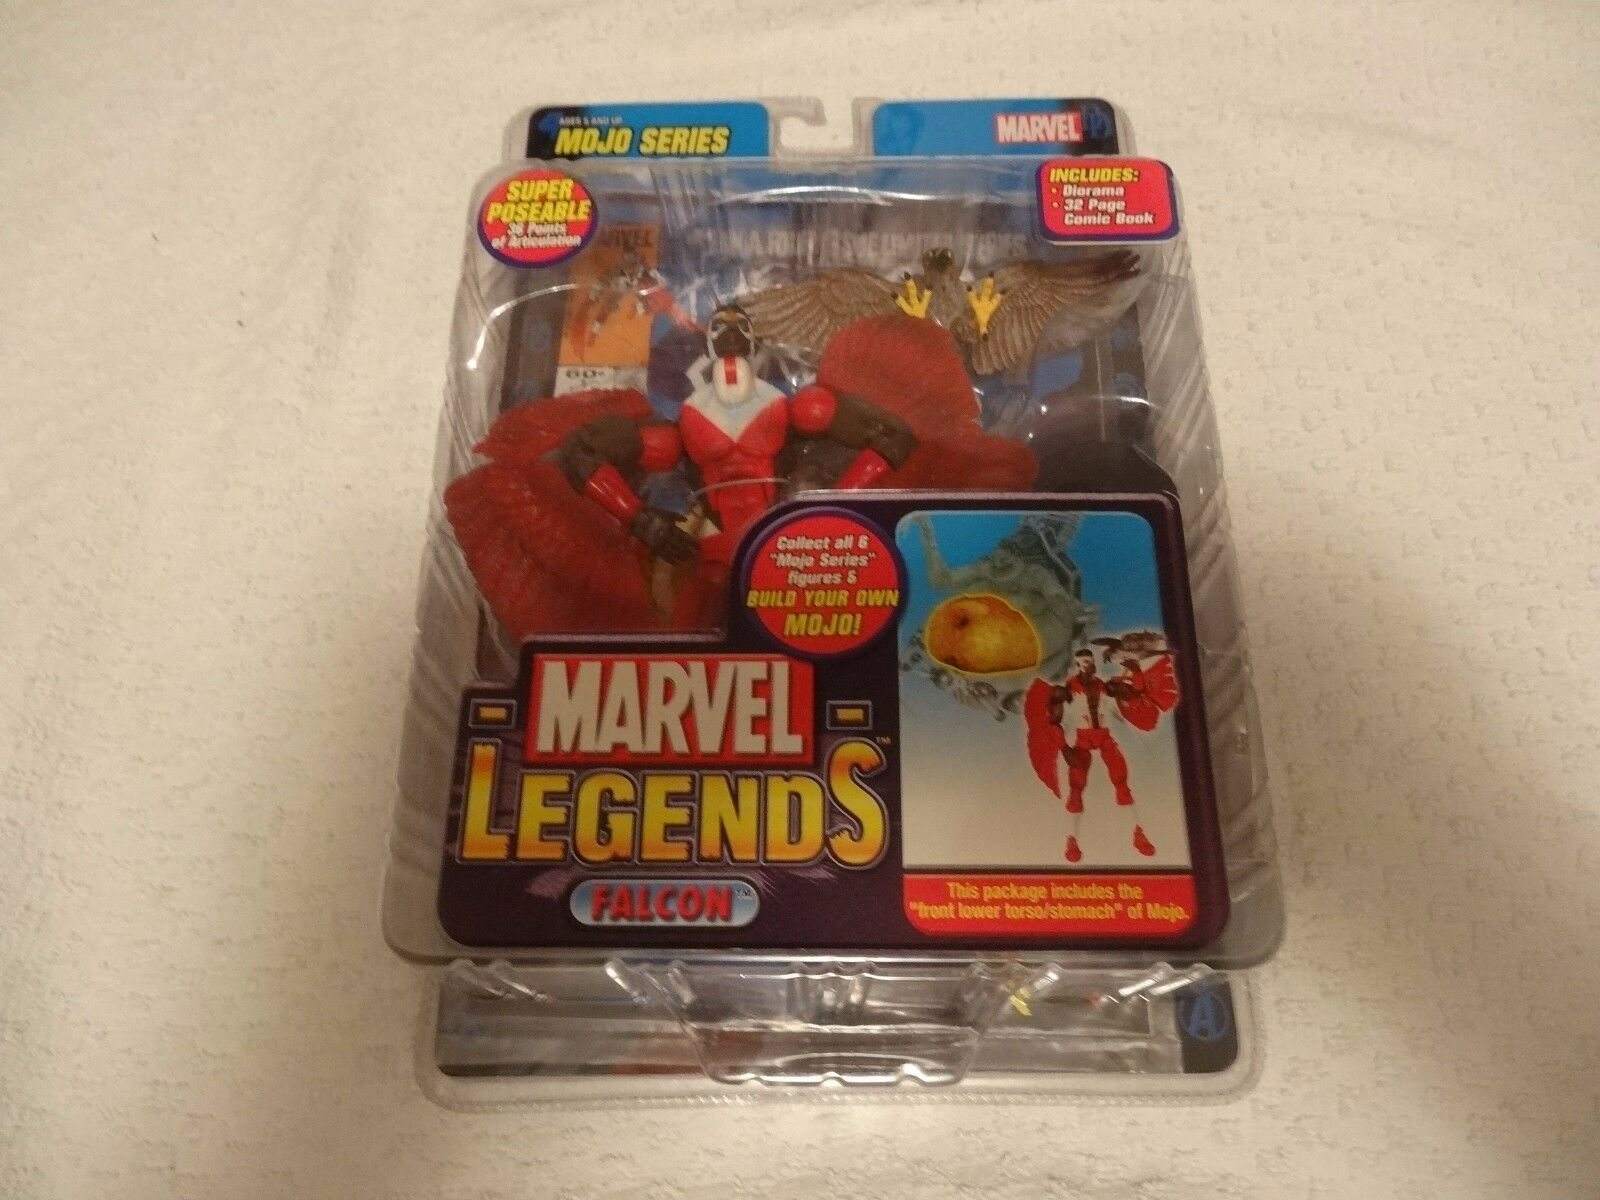 Marvel Legends Mojo Series Falcon Rare Chase Variant rosso Toy Biz New Free Ship